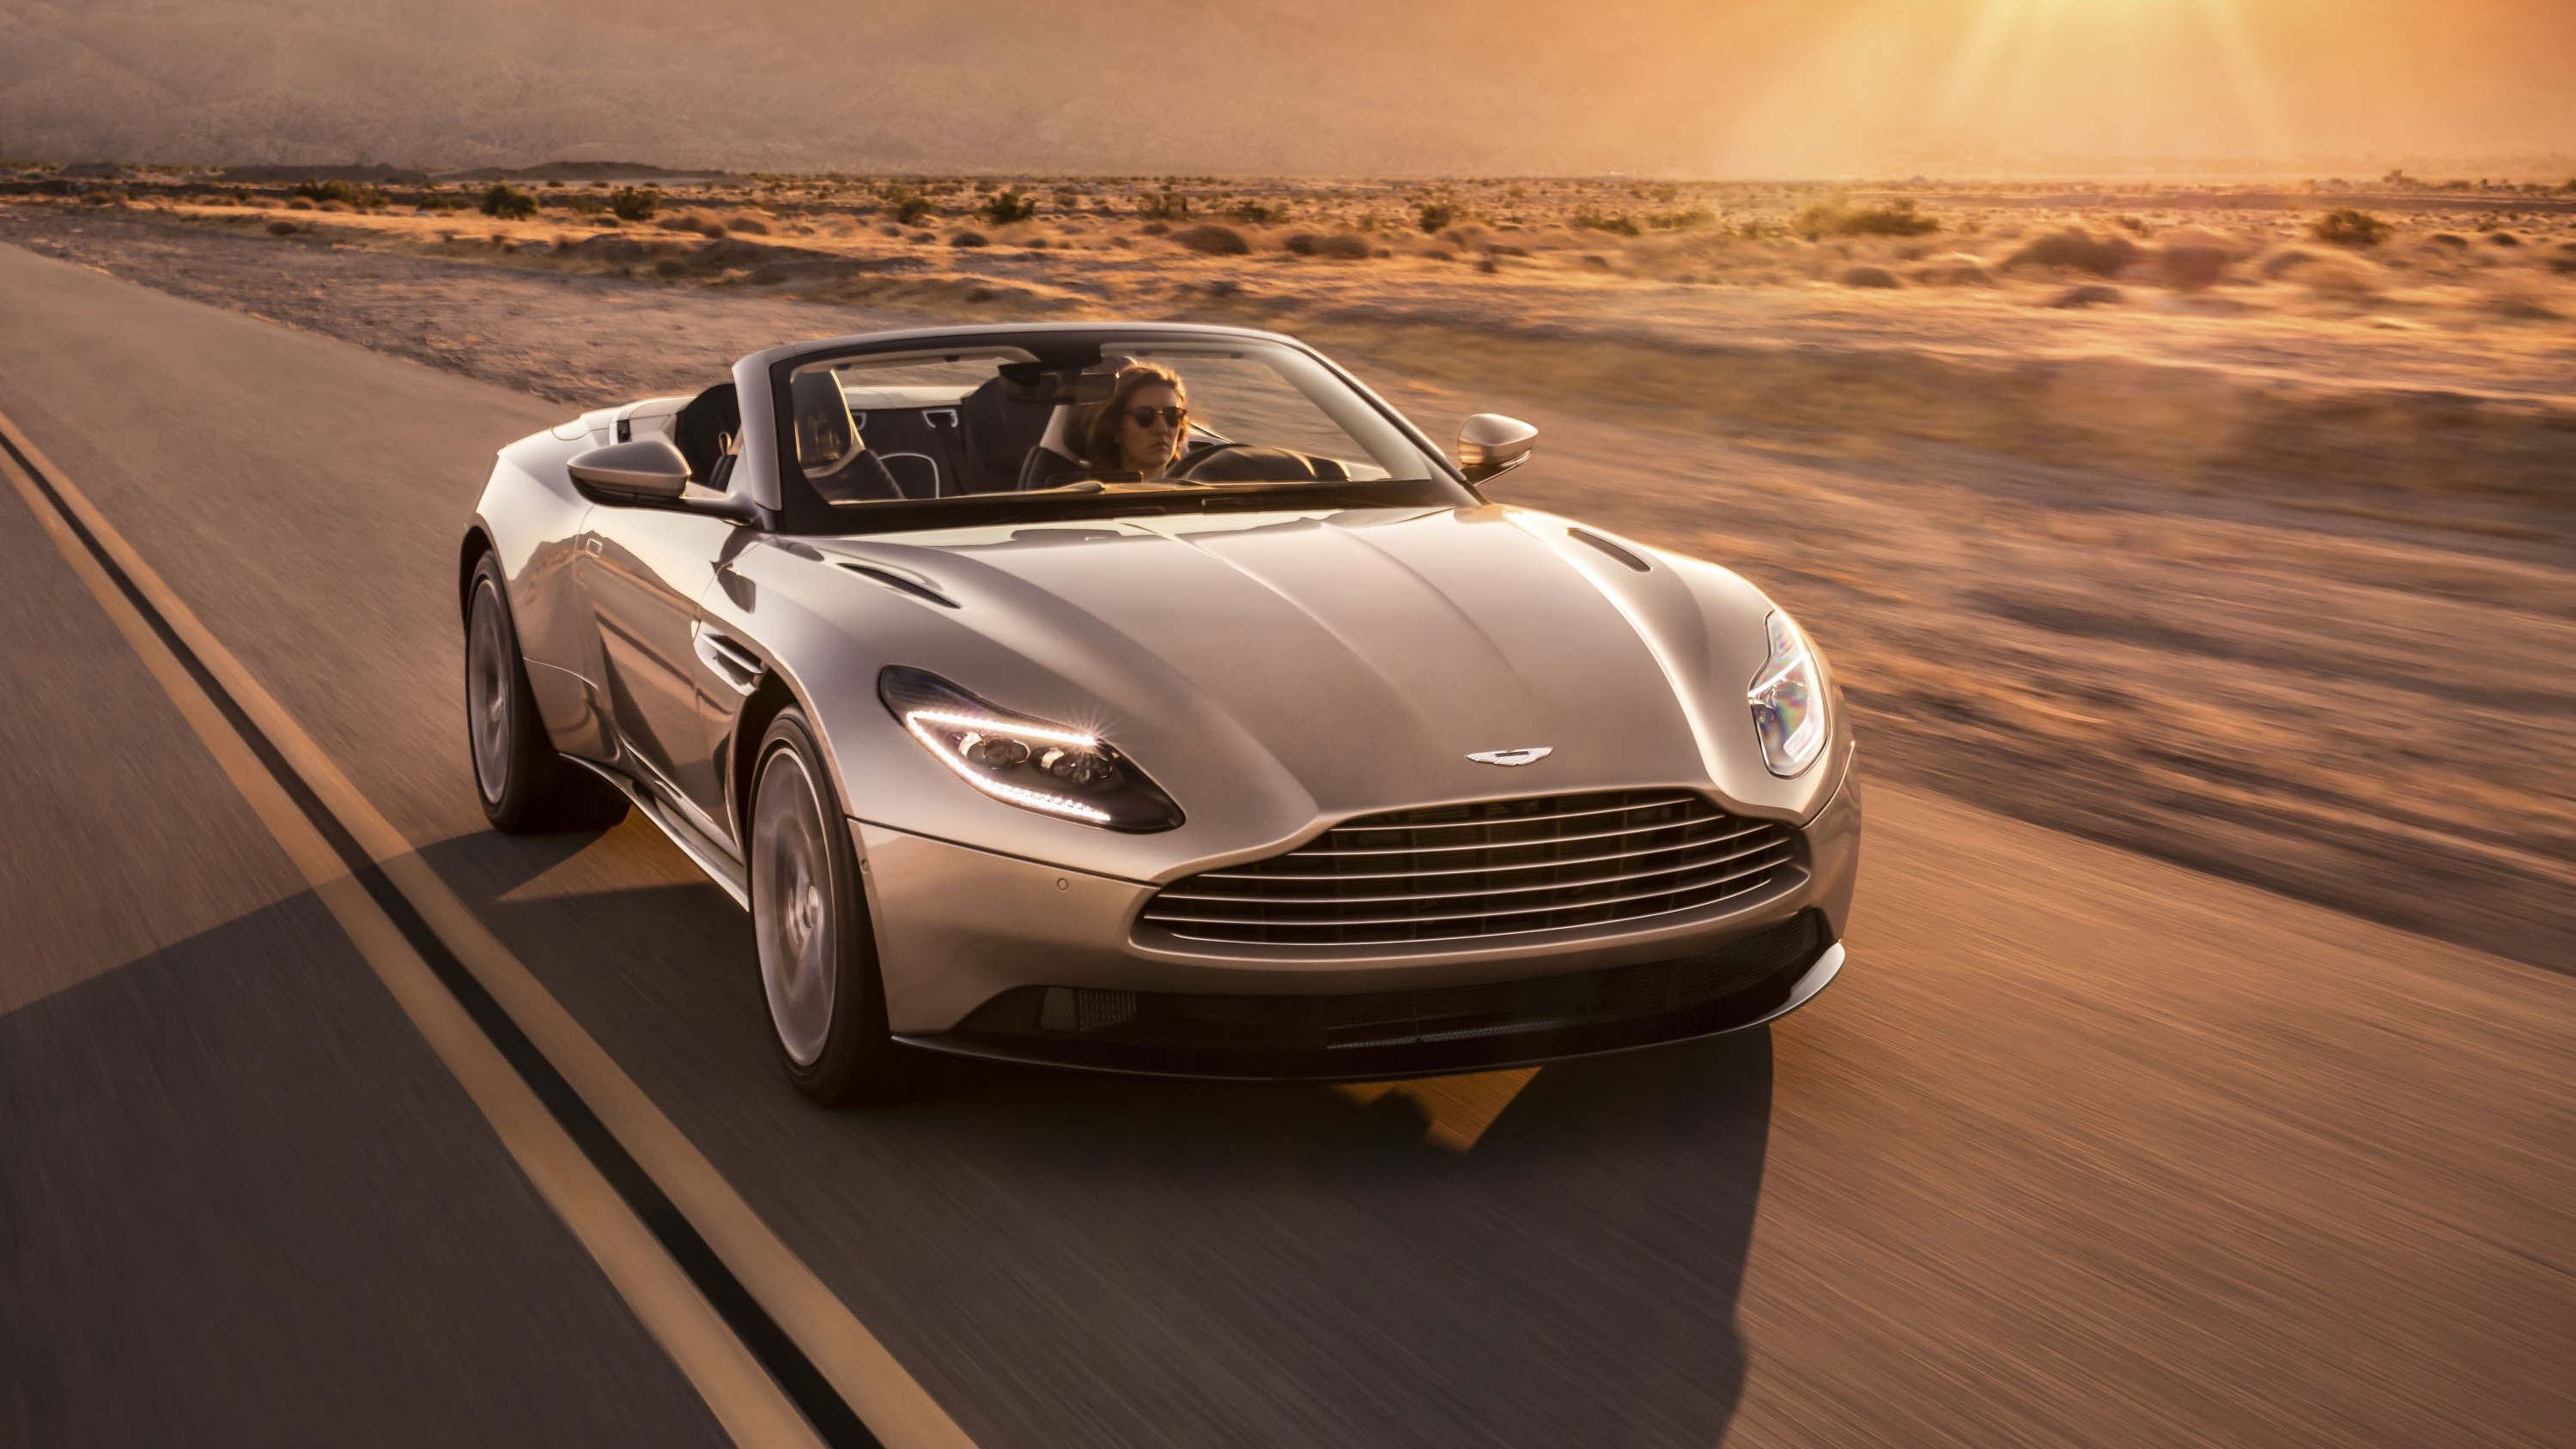 2018 aston martin db11 volante top speed. Black Bedroom Furniture Sets. Home Design Ideas